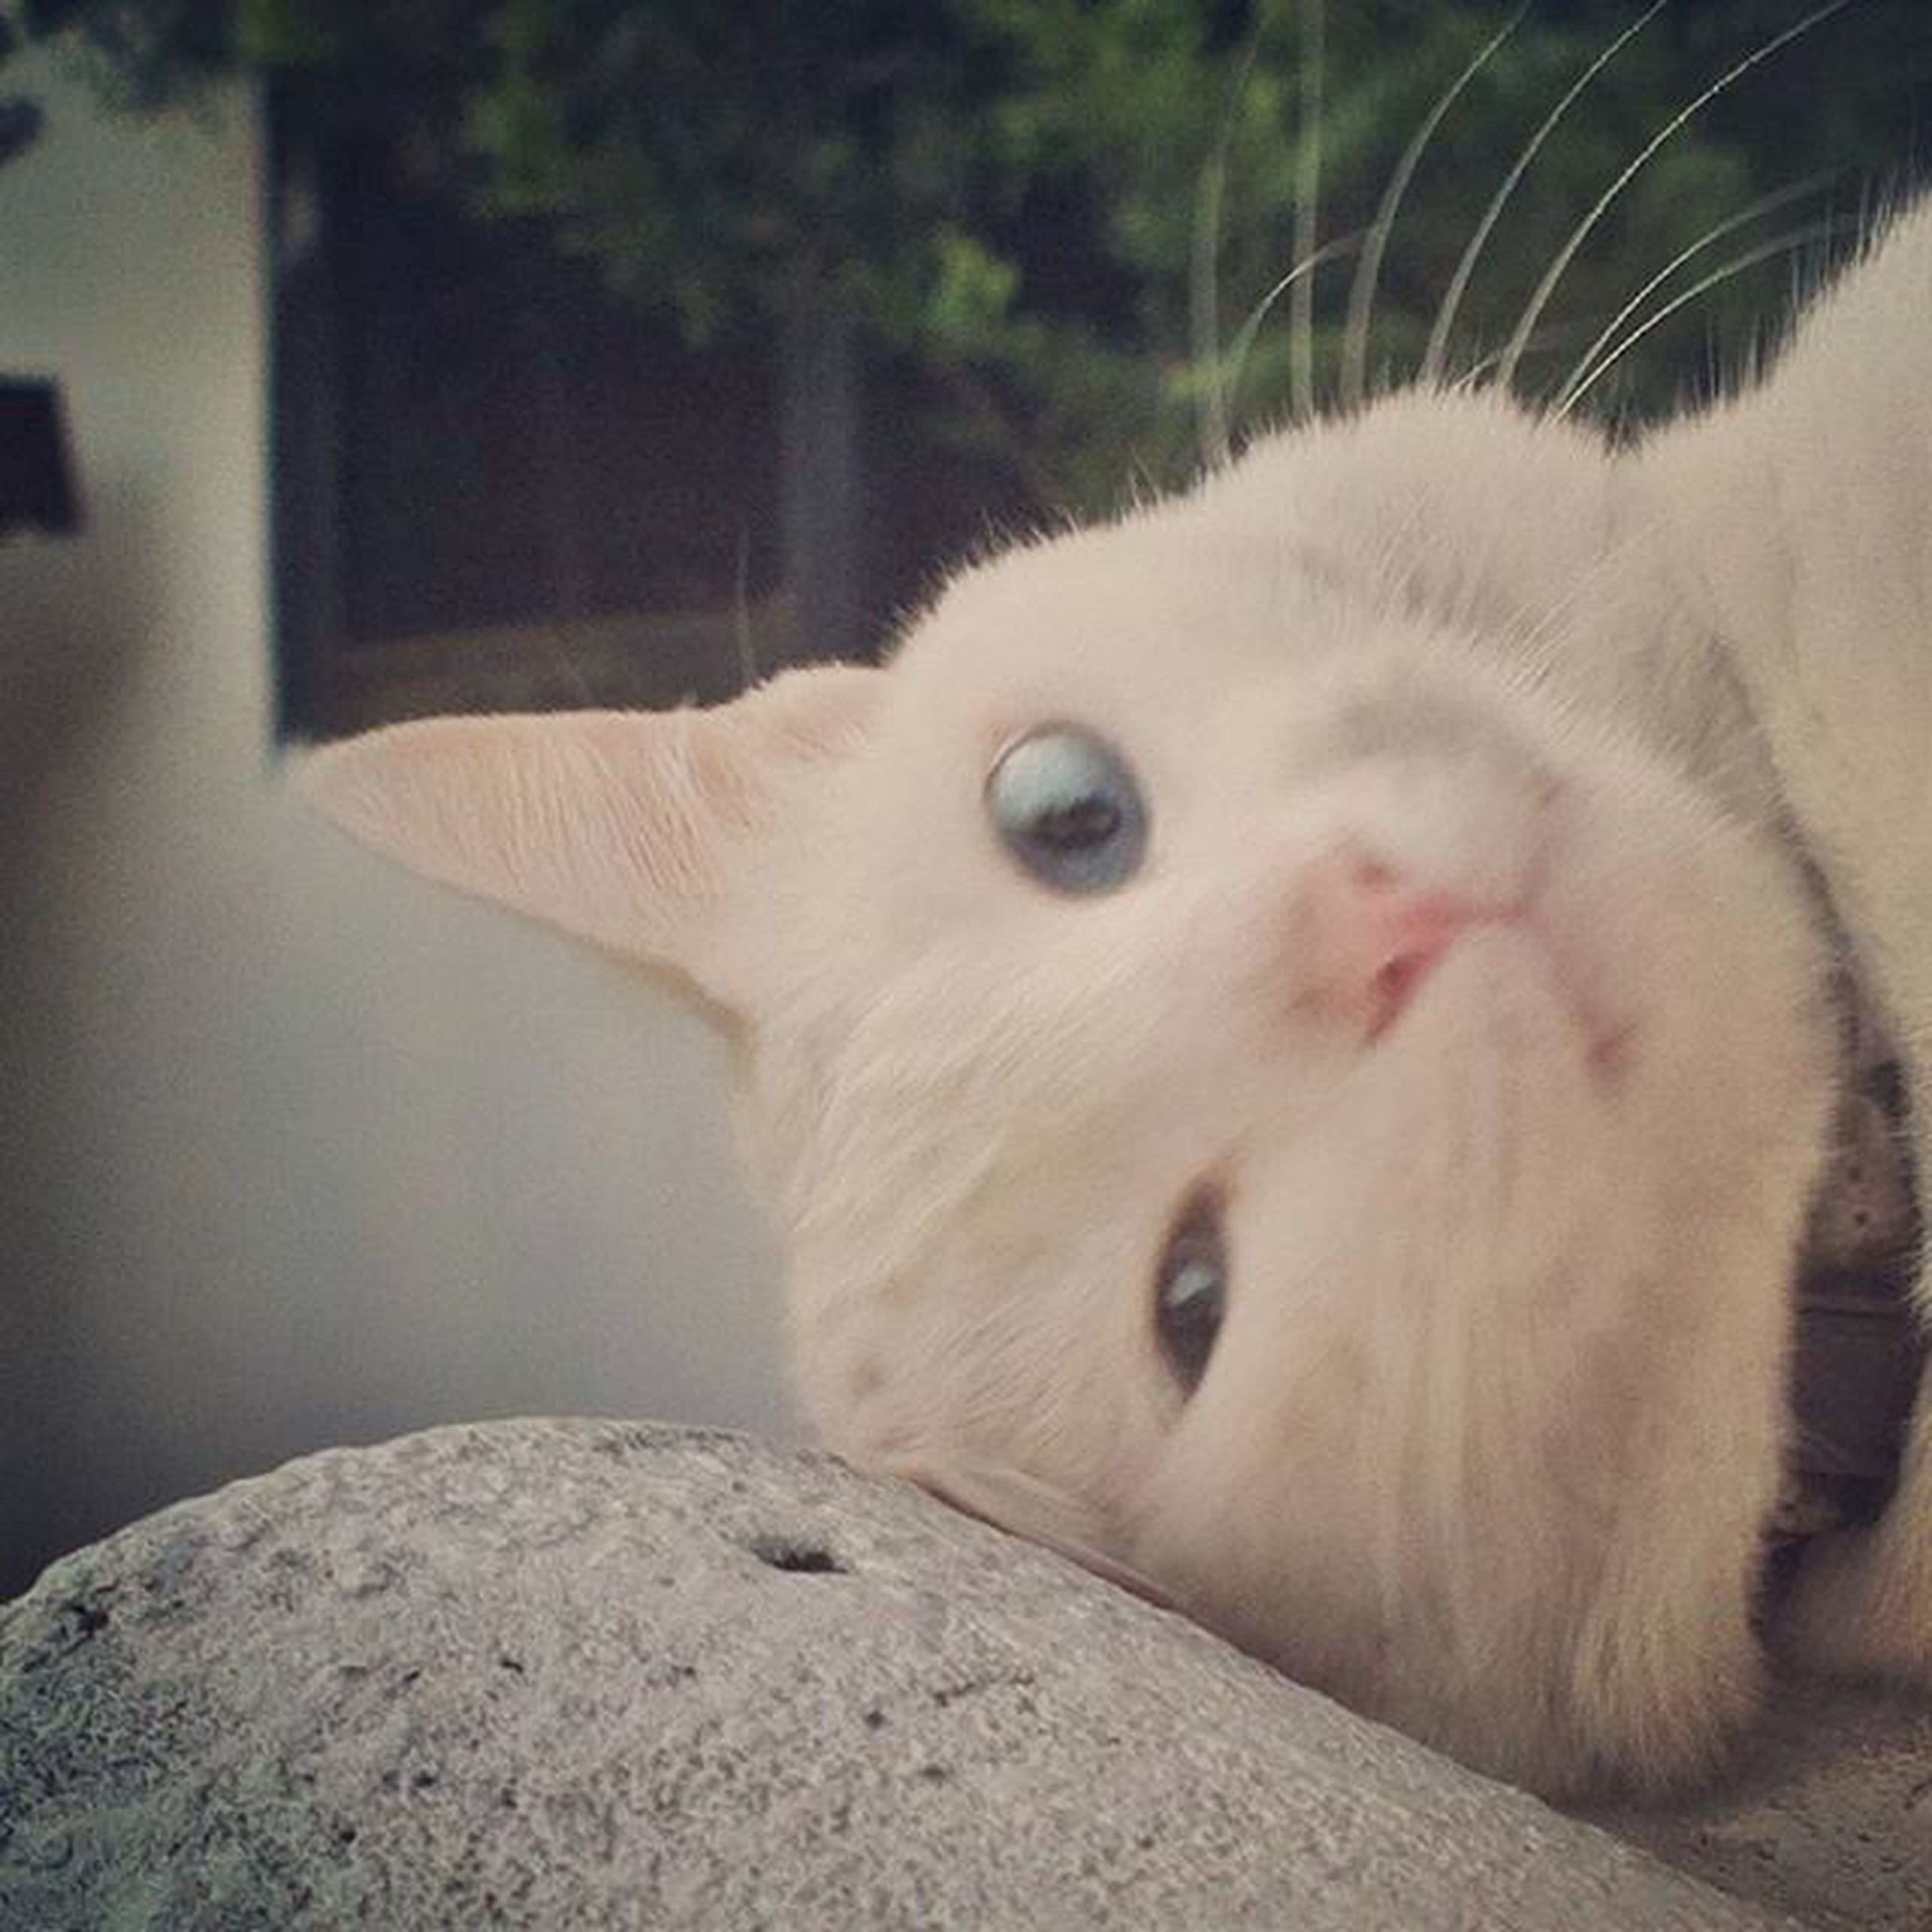 animal themes, one animal, domestic animals, mammal, pets, close-up, animal head, indoors, white color, portrait, looking at camera, relaxation, zoology, domestic cat, focus on foreground, whisker, animal body part, cute, front view